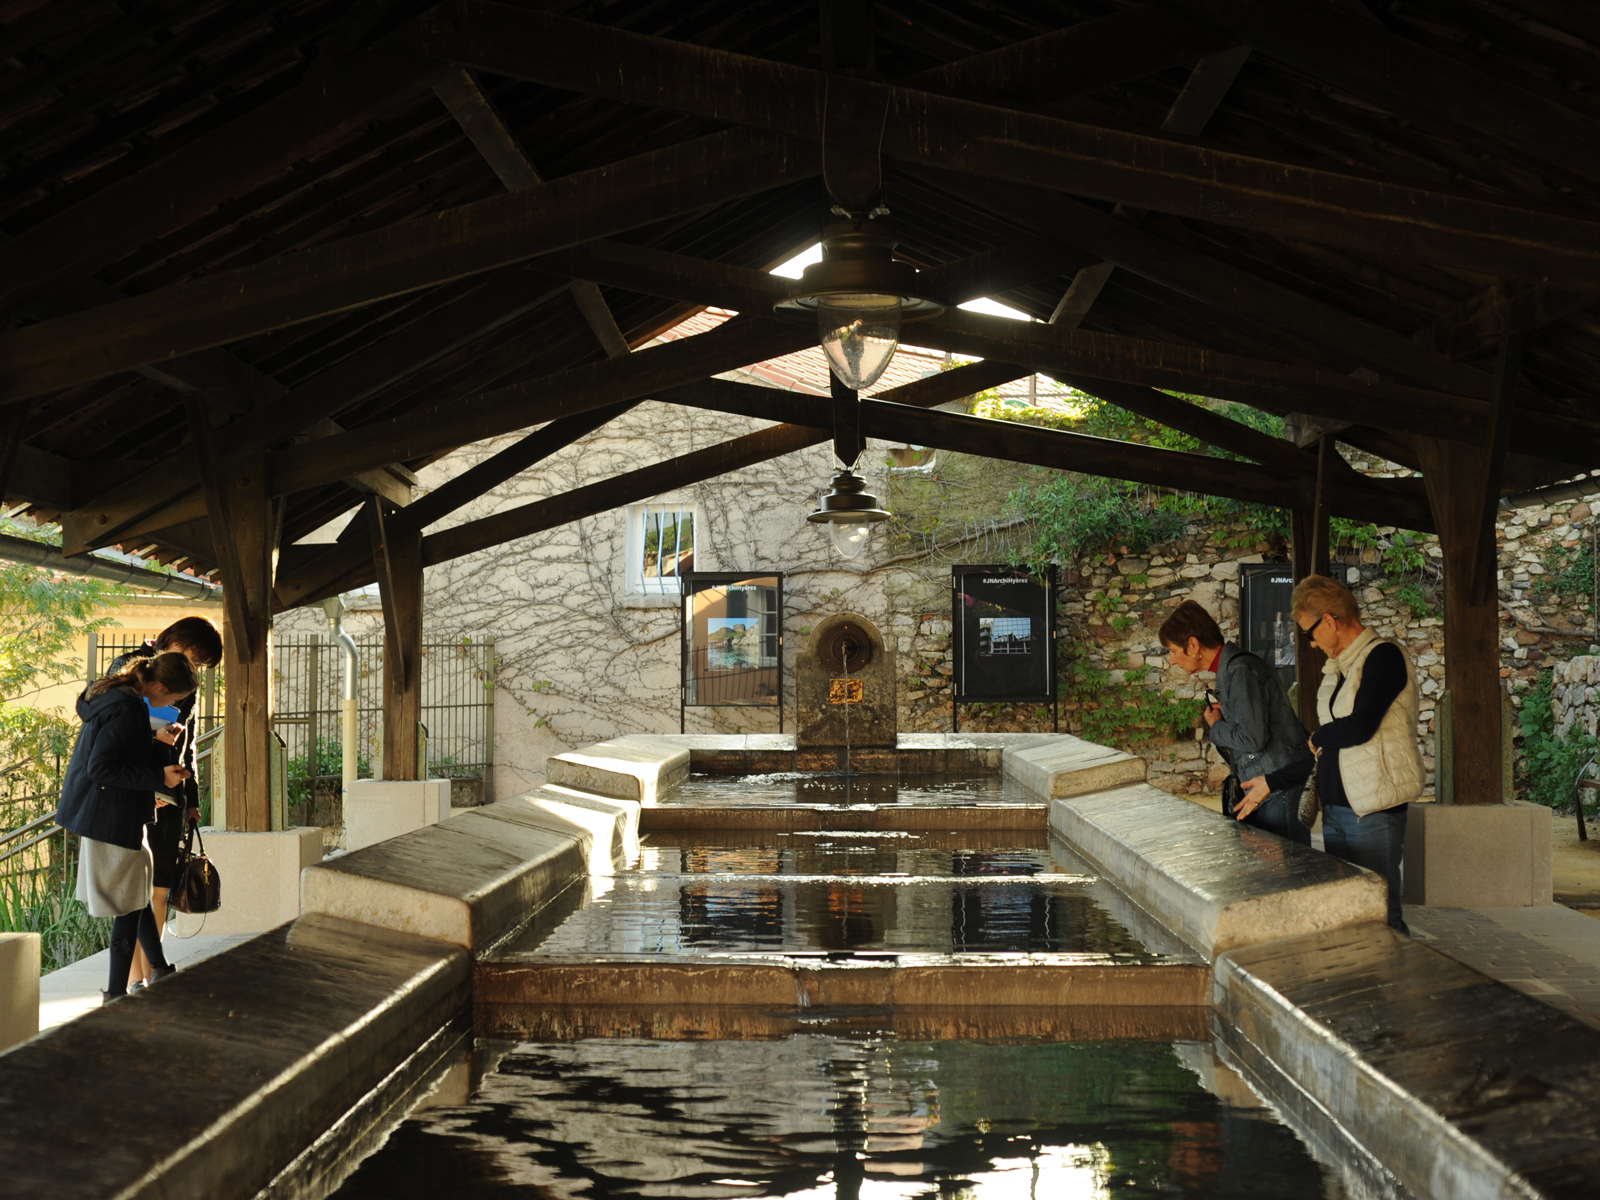 ville-de-hyeres-le-lavoir-pole-attraction-centre-ancien